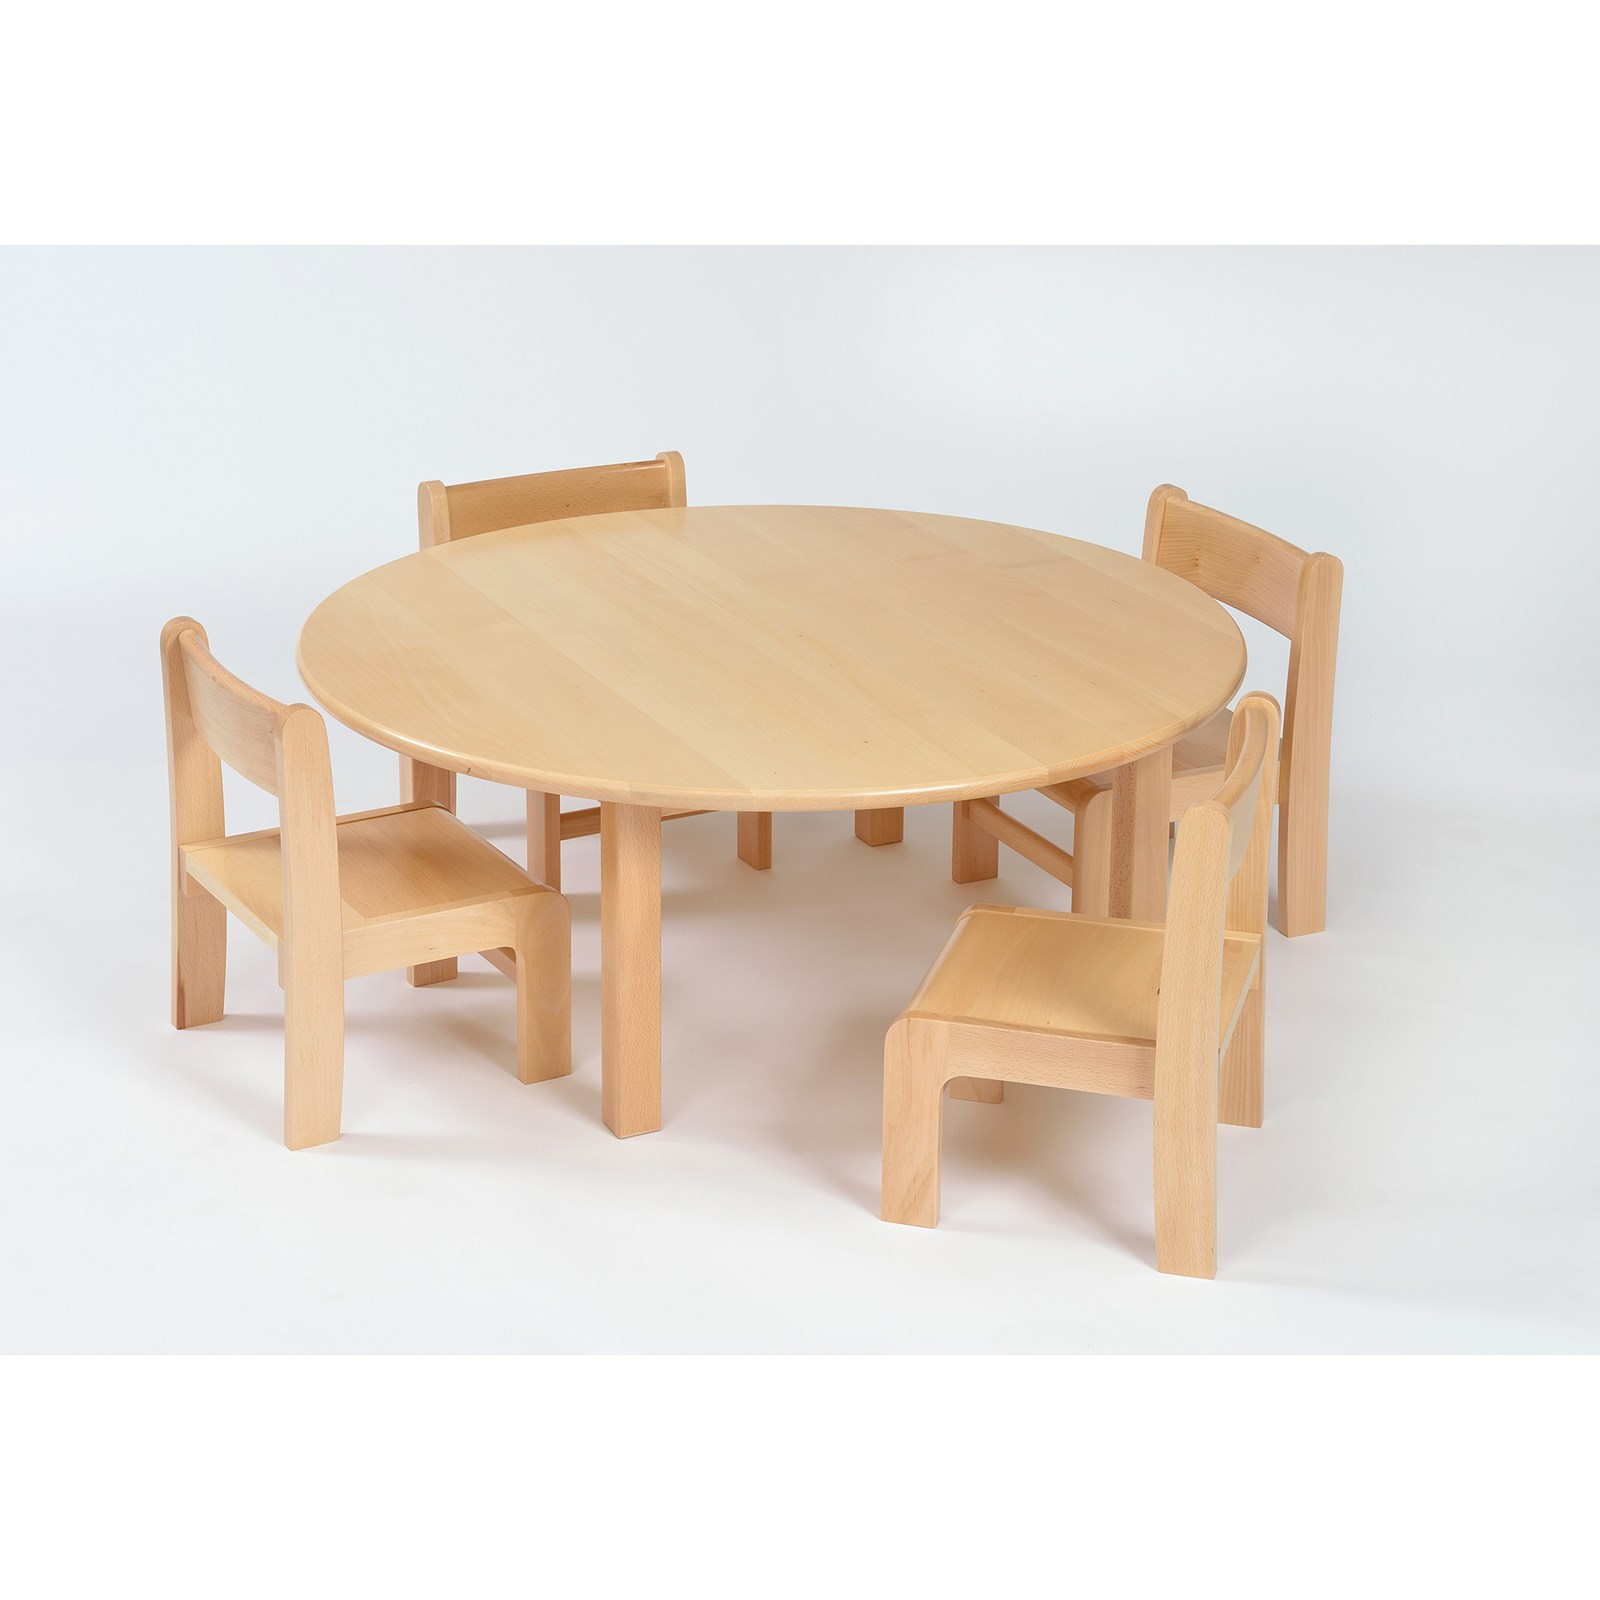 Galt Circ Table 4 Chairs - 3-4 Yr Olds